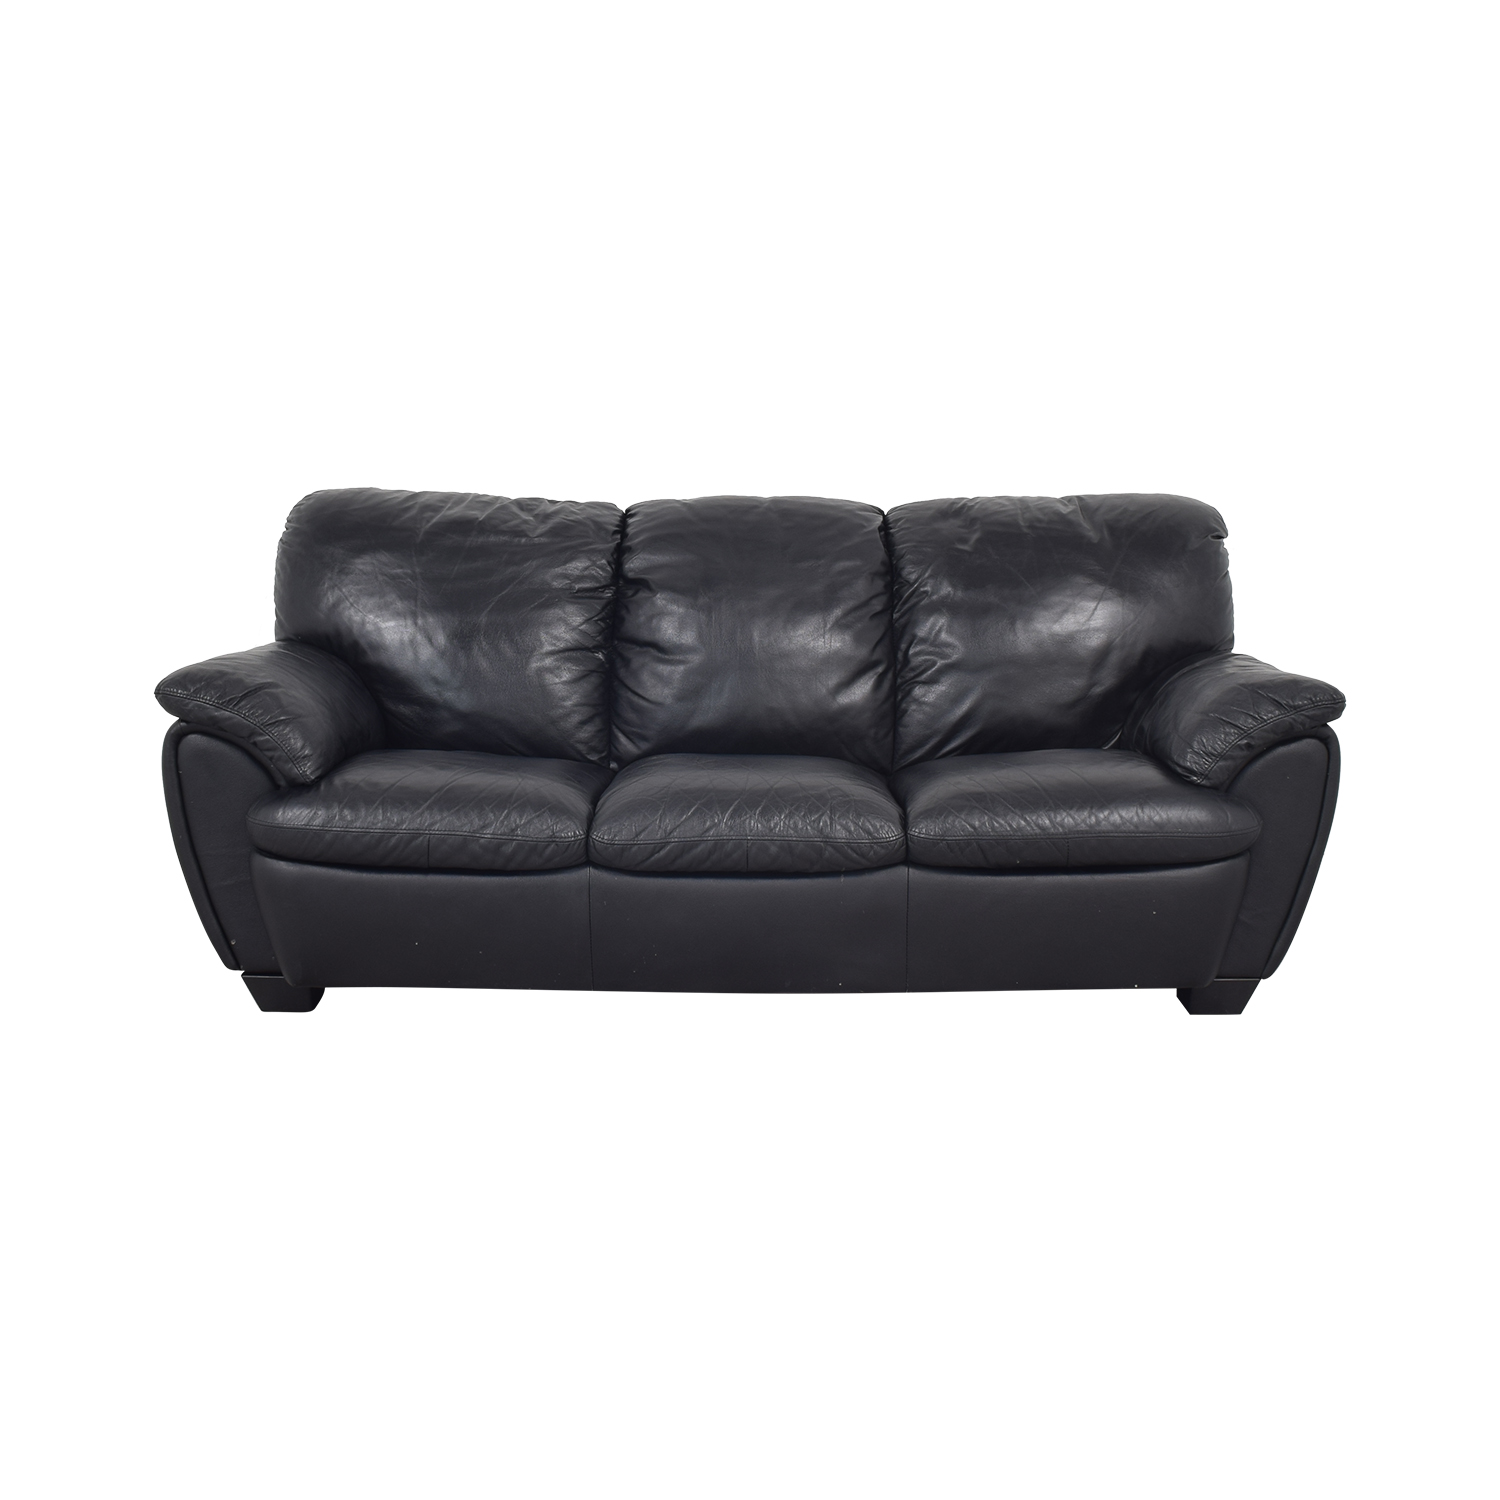 Broyhill Furniture Broyhill Leather Sofa and Ottoman ma